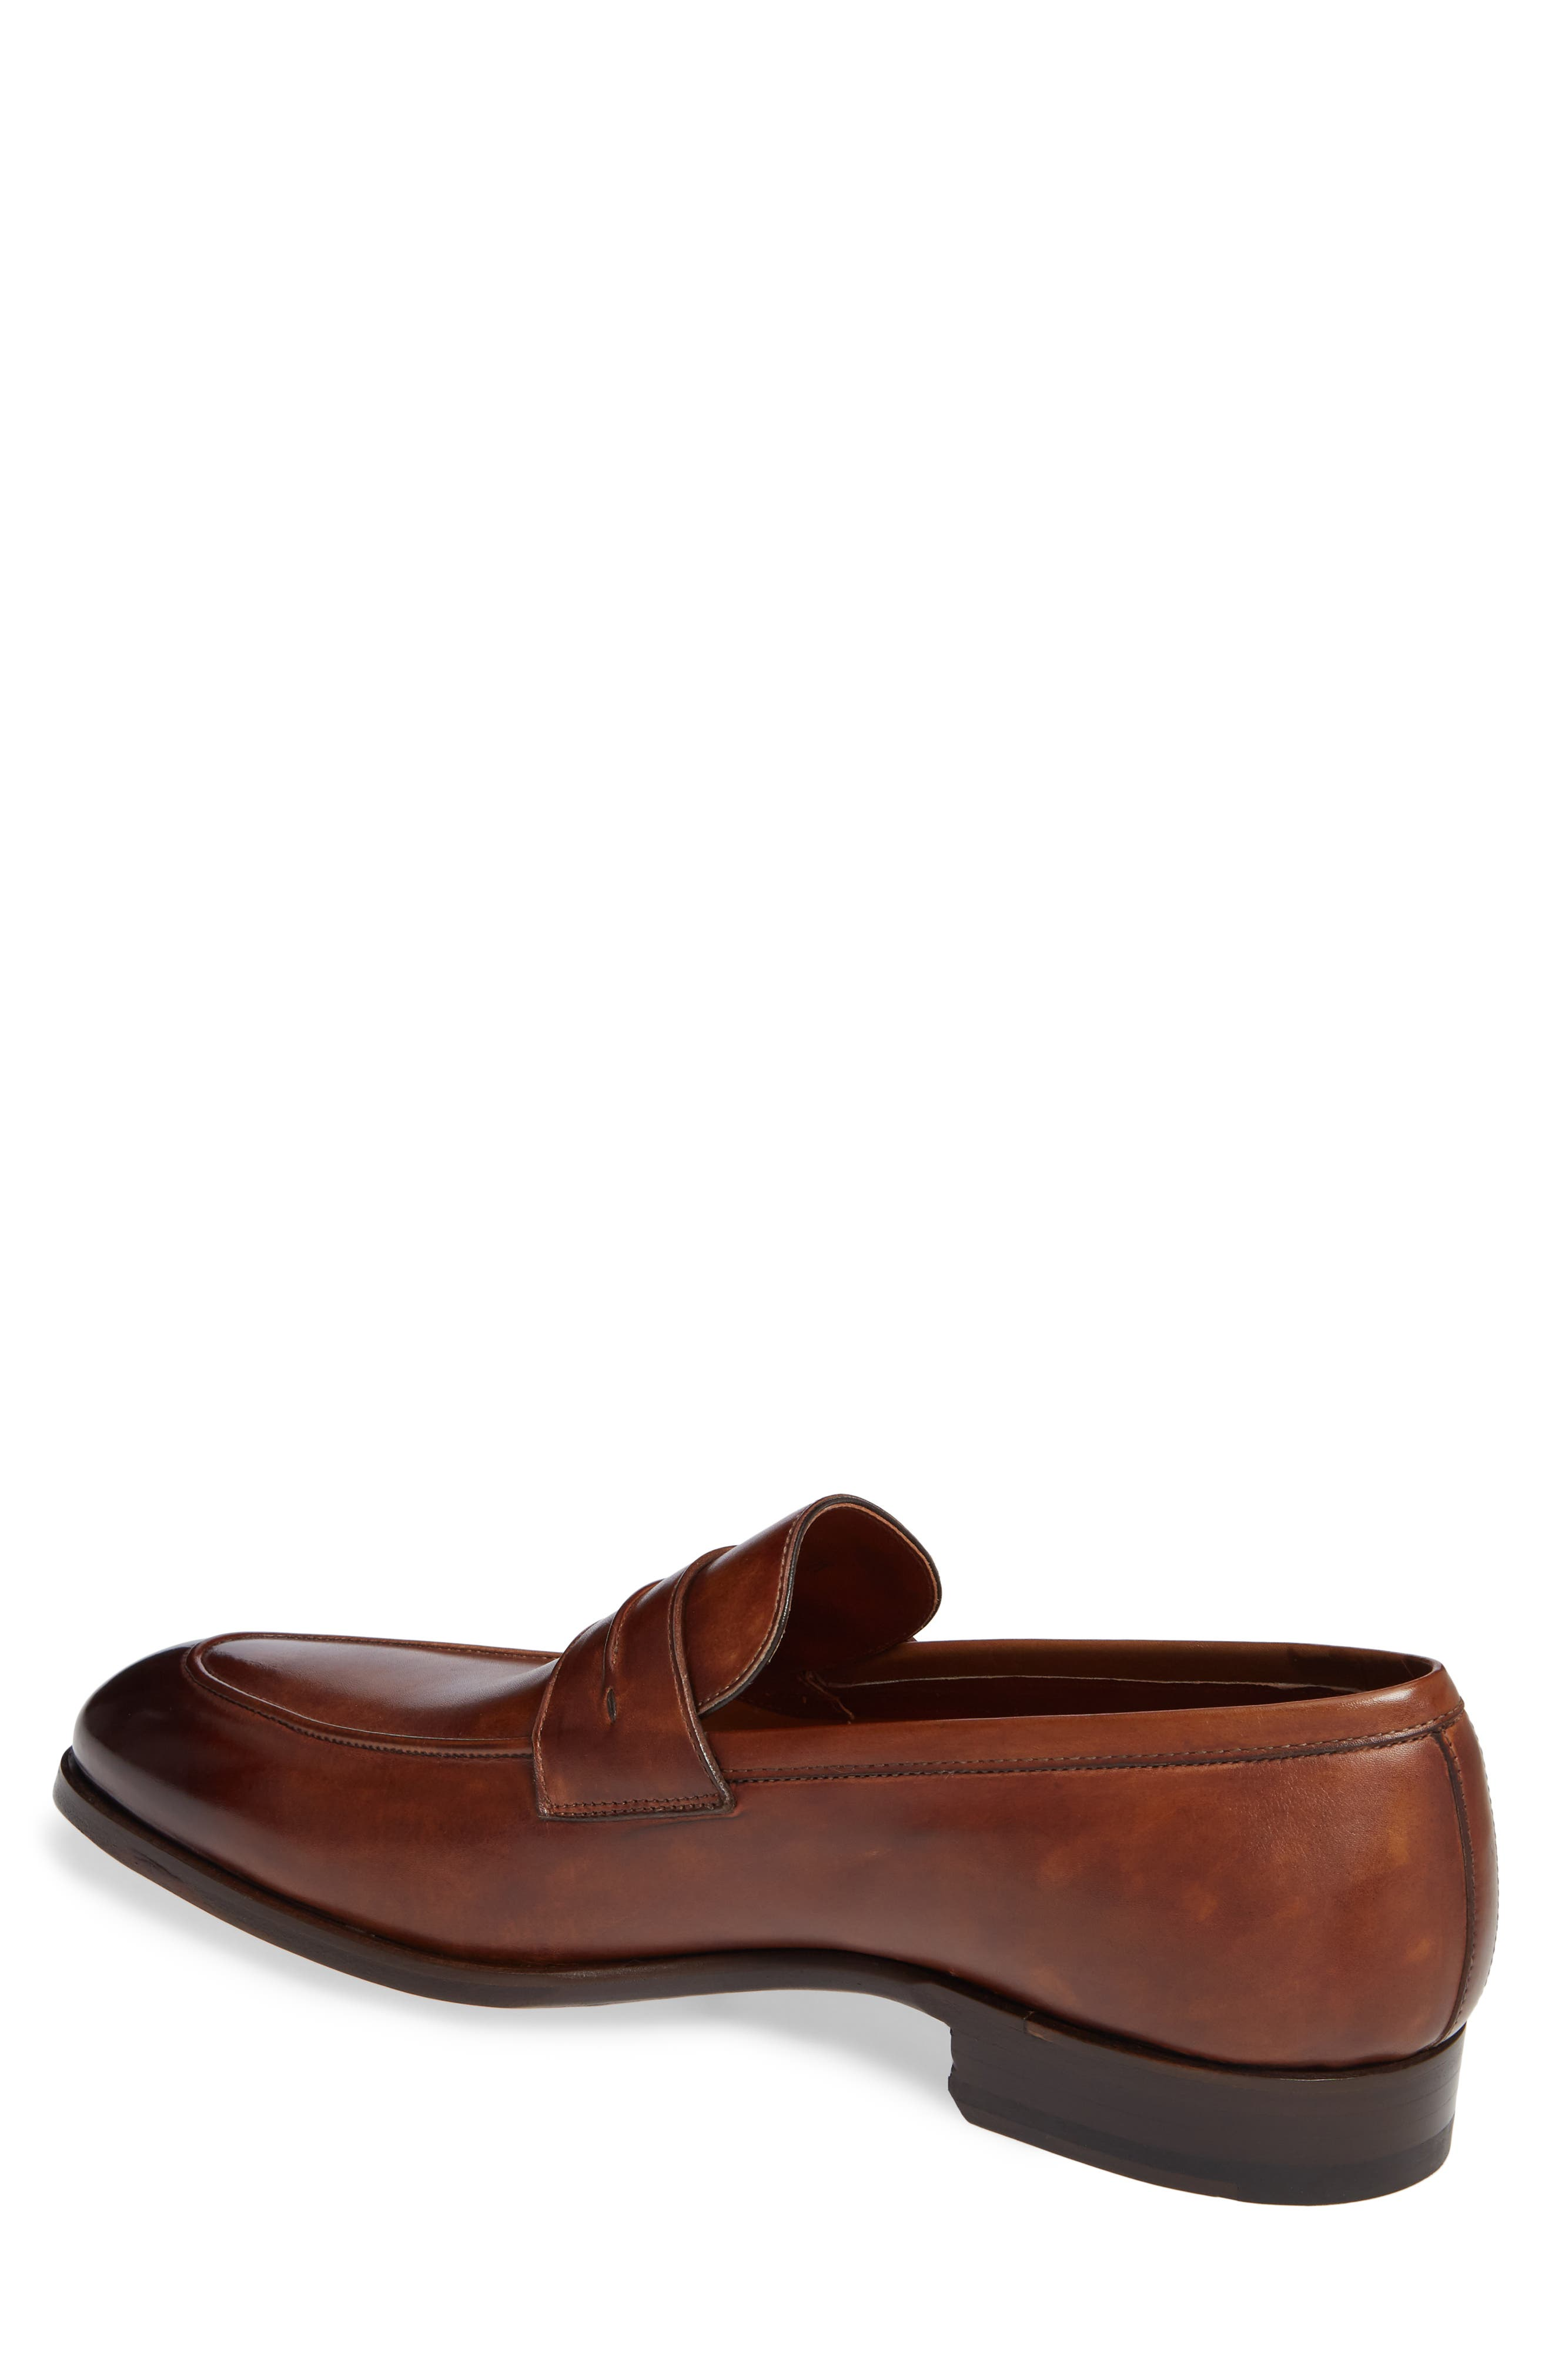 Sullivan Penny Loafer,                             Alternate thumbnail 2, color,                             240